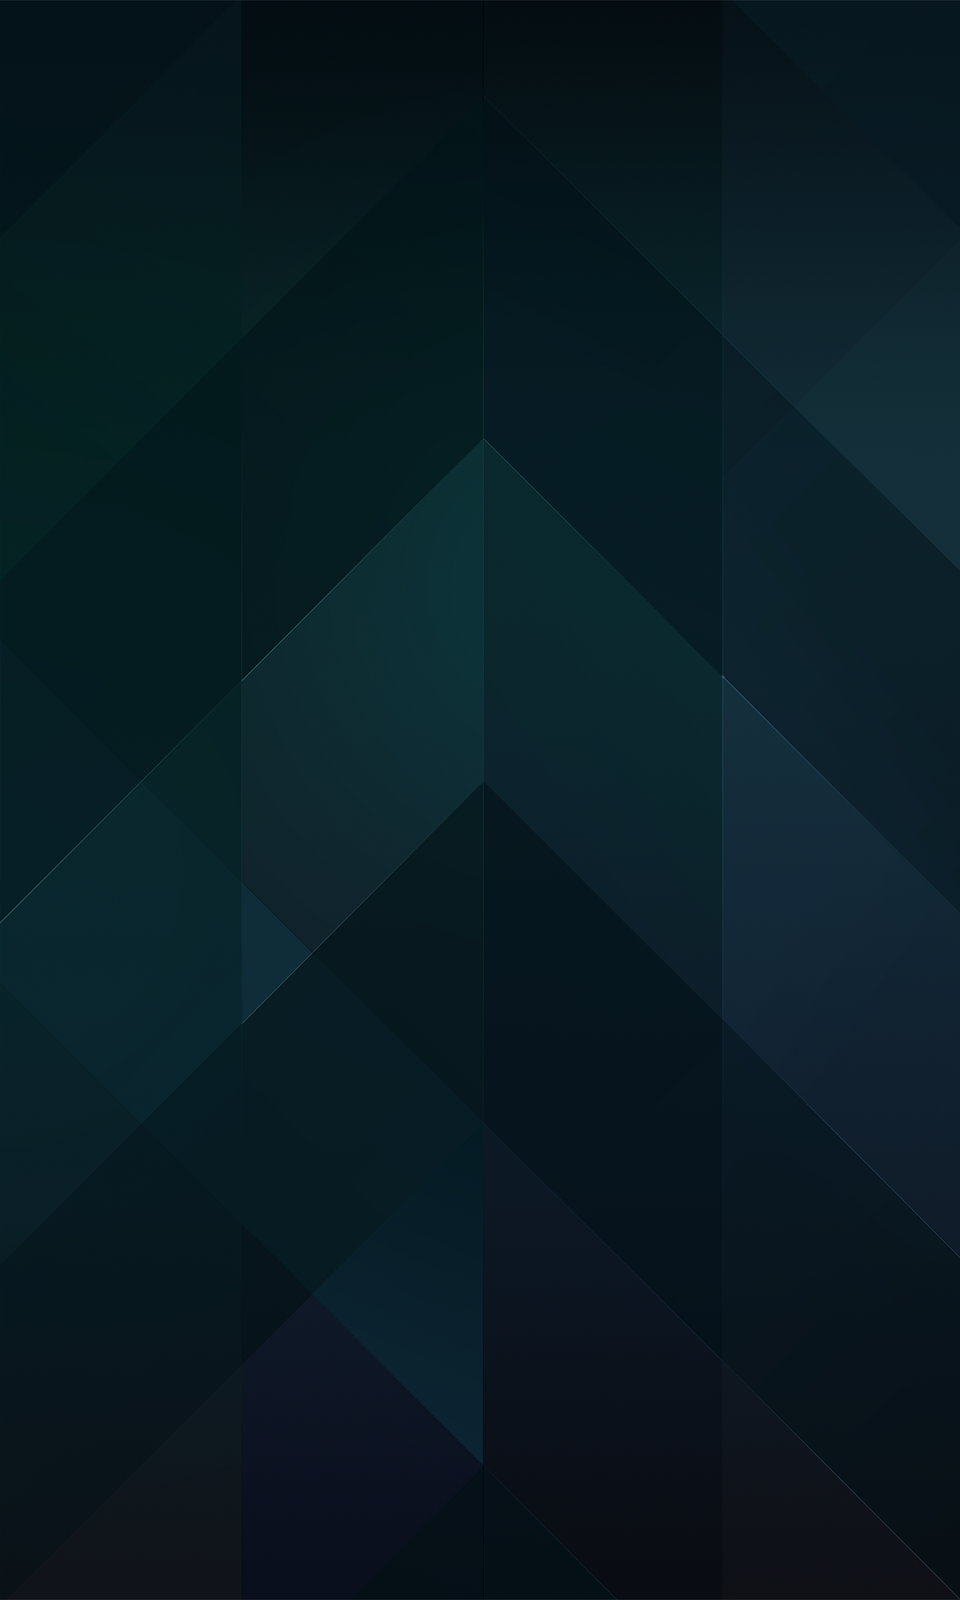 iphone 5s wallpapers